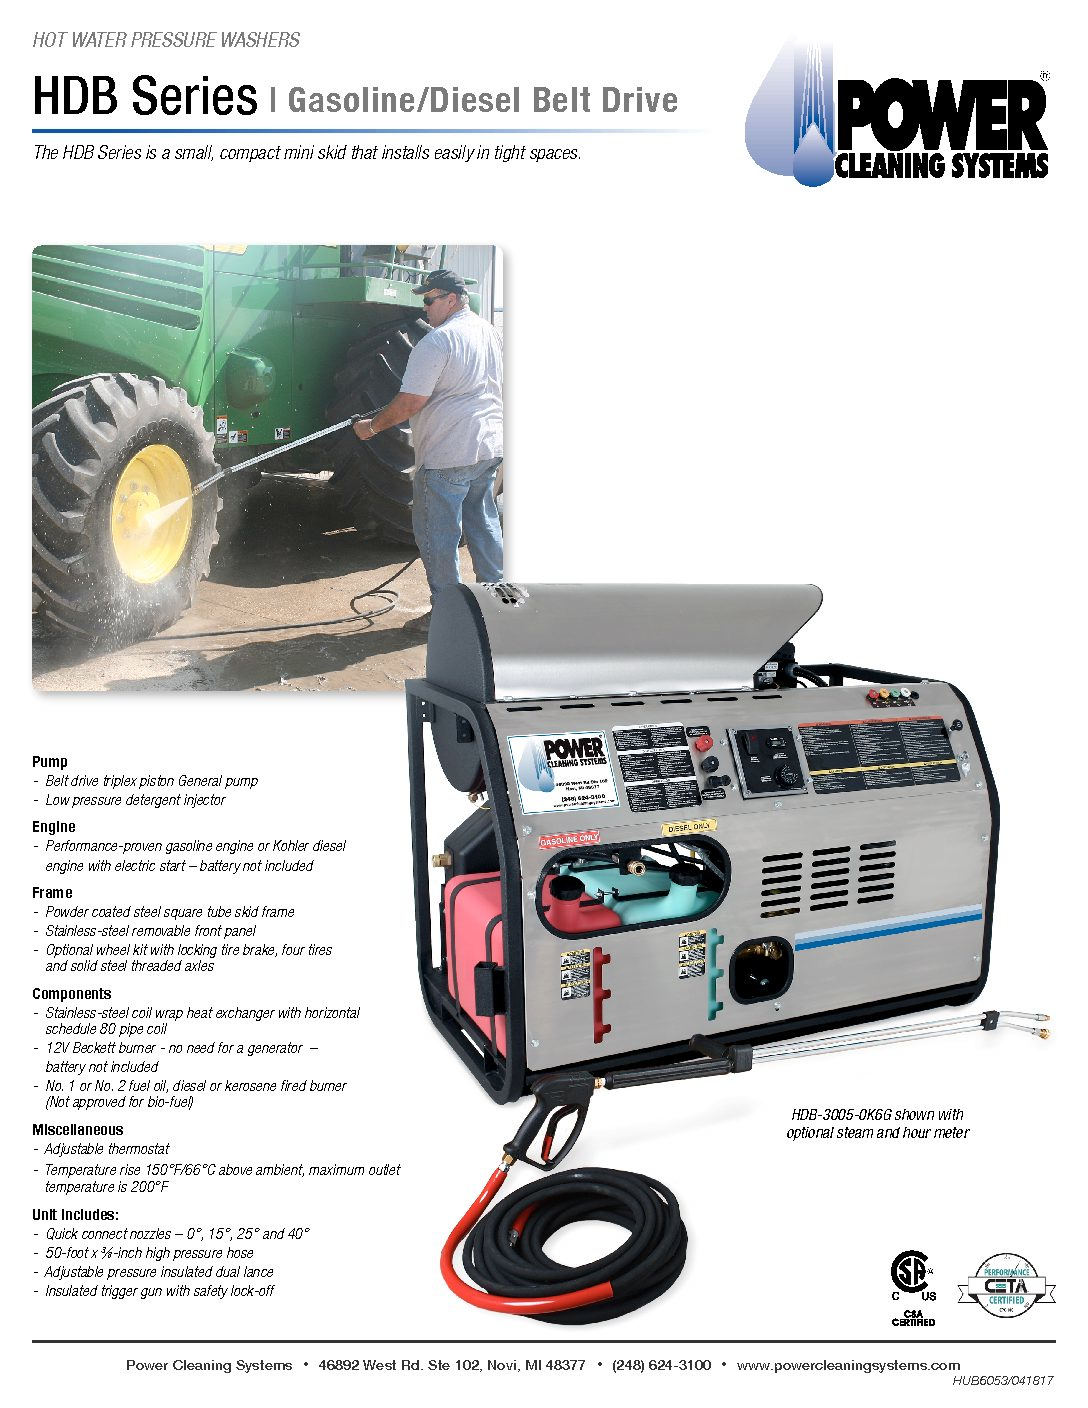 HDB-Series_Power-Cleaning-Systems-pdf.jpg